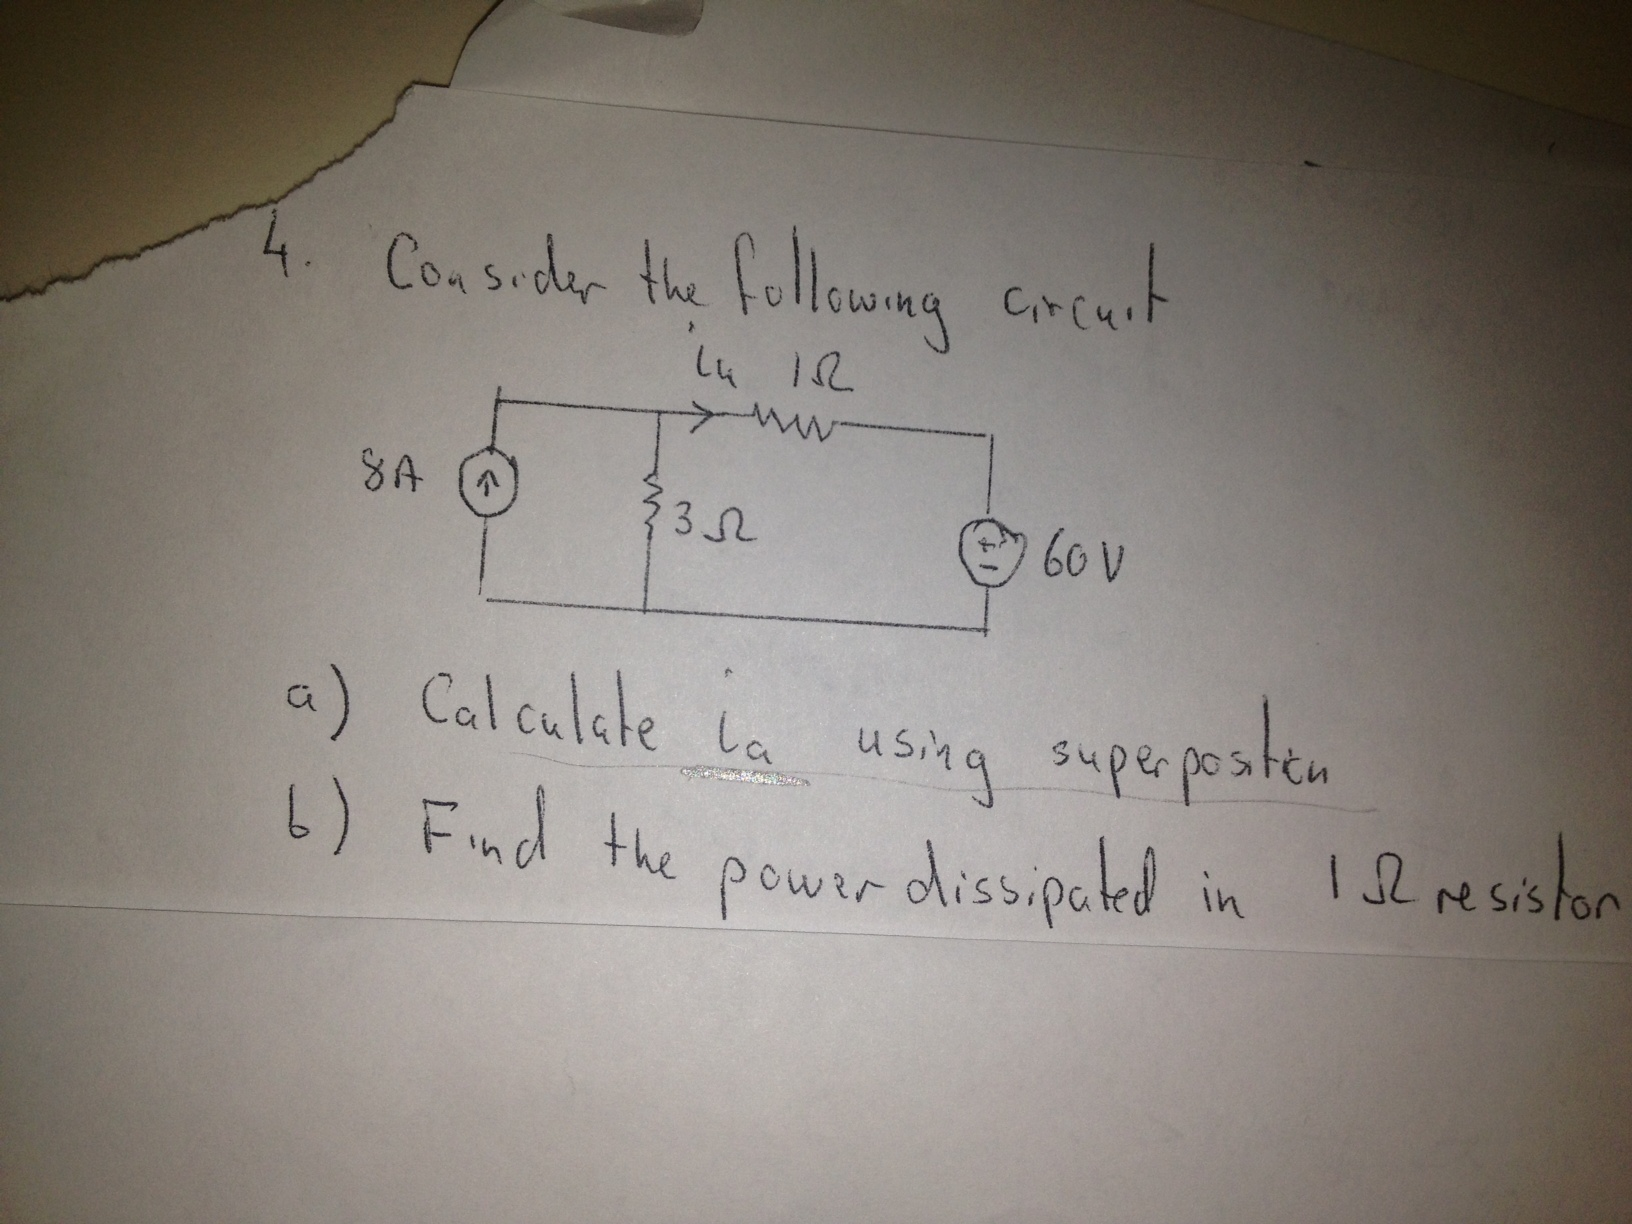 Consider the following circuit Calculate ia using